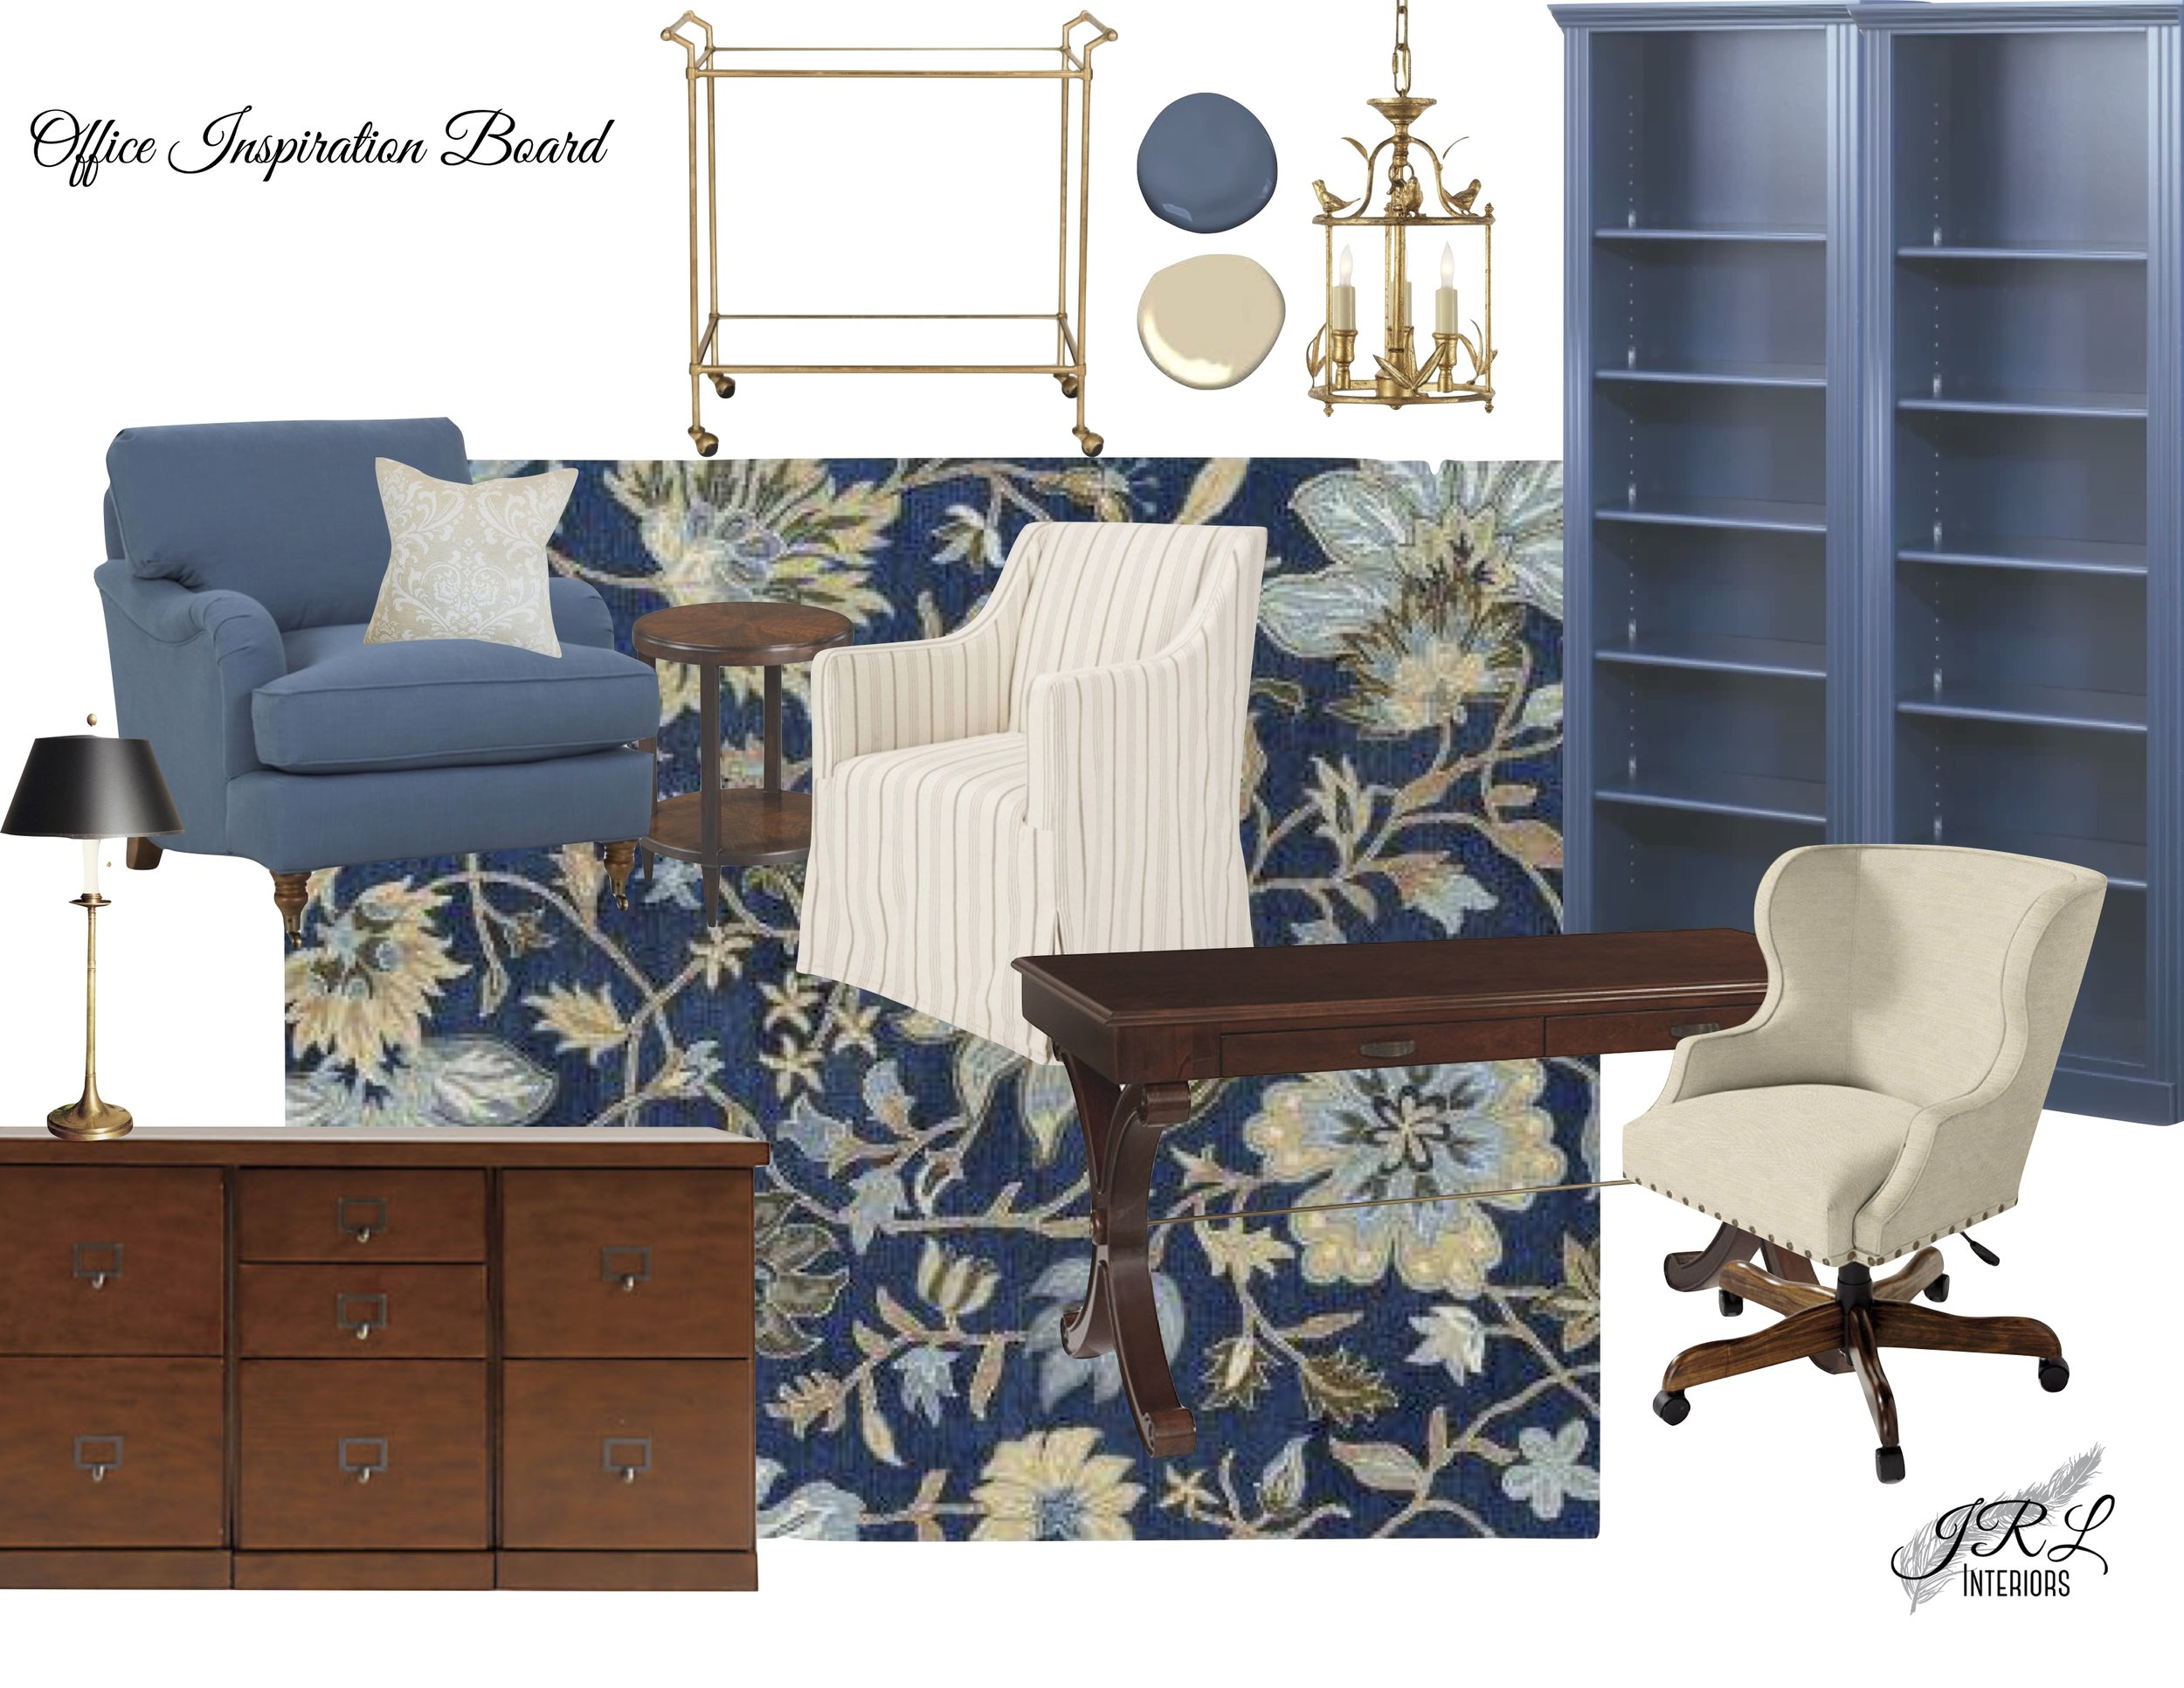 Shop the look:   Bar Cart   |   Lantern   |   Bookcases   |   Desk Chair   |   Wool Rug   |   Writing Desk   |   Credenza   |   Table lamp   |   Club Chair   |   Throw Pillow   |   Side Table   |   Slipcovered Chair